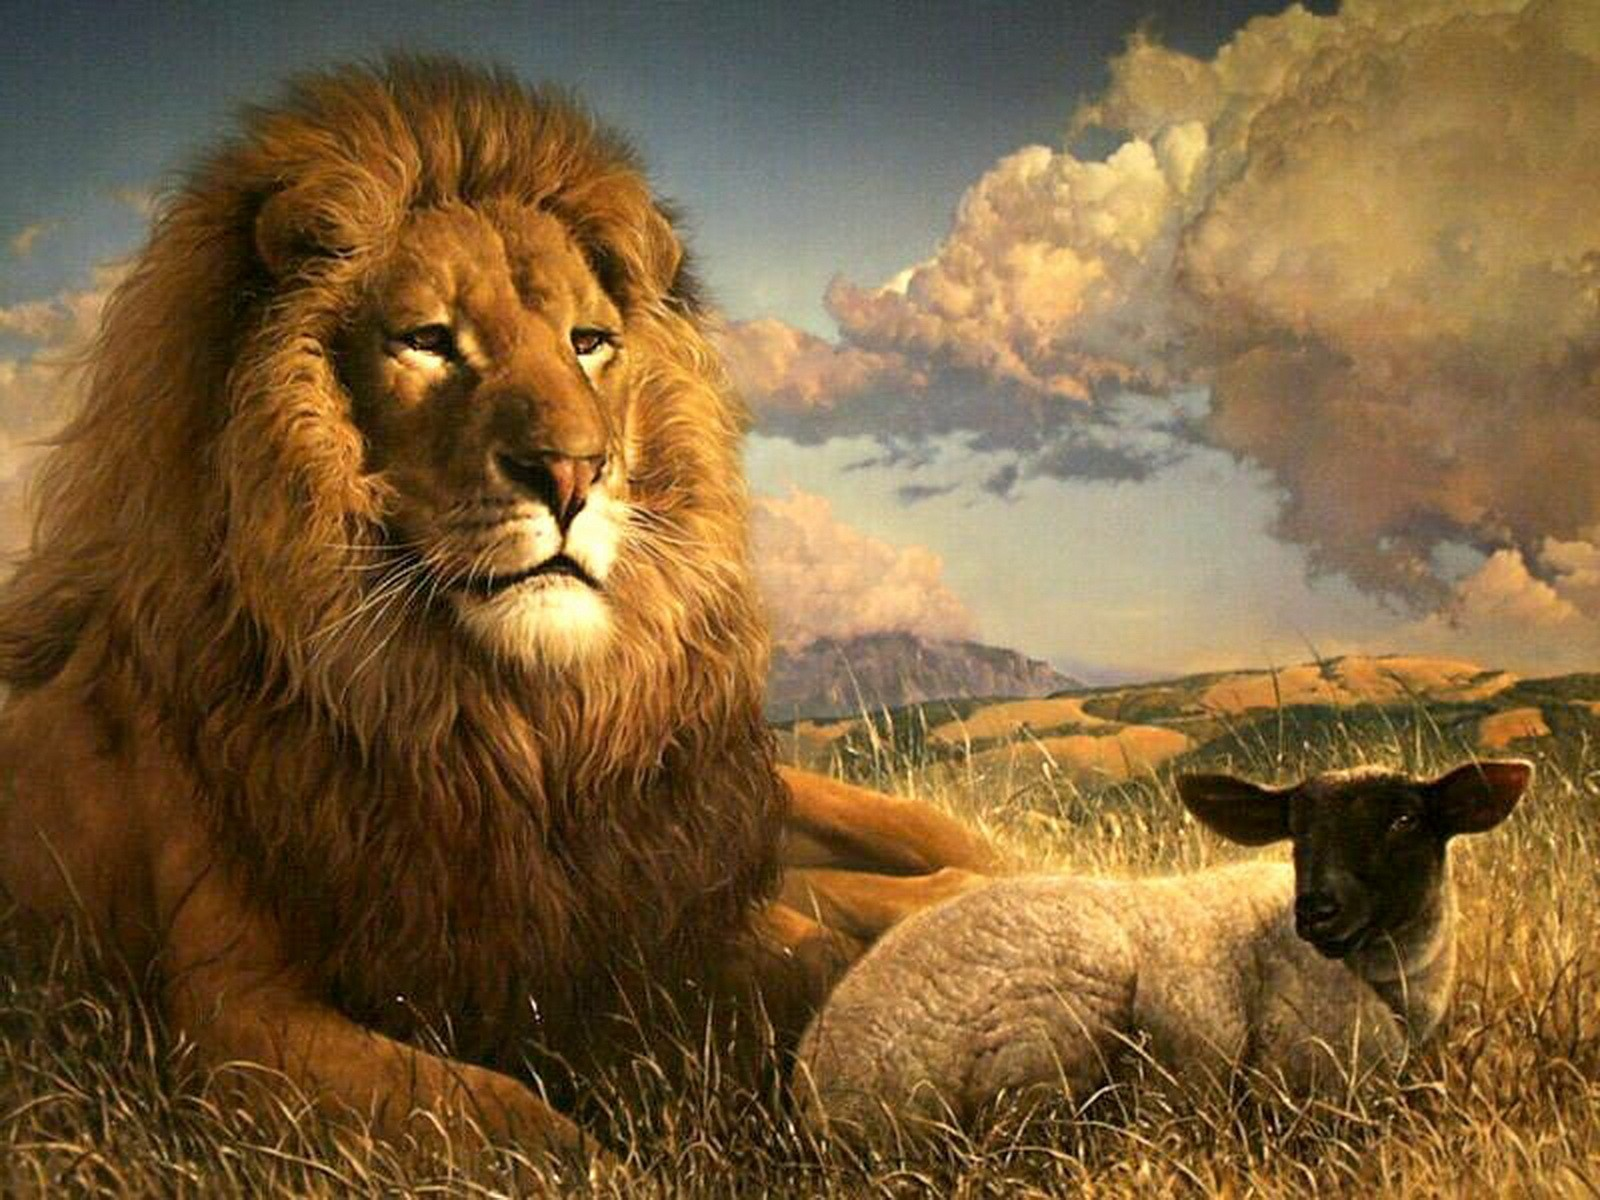 wallpapers lion backgrounds lion screensavers lion king wallpapers 1600x1200